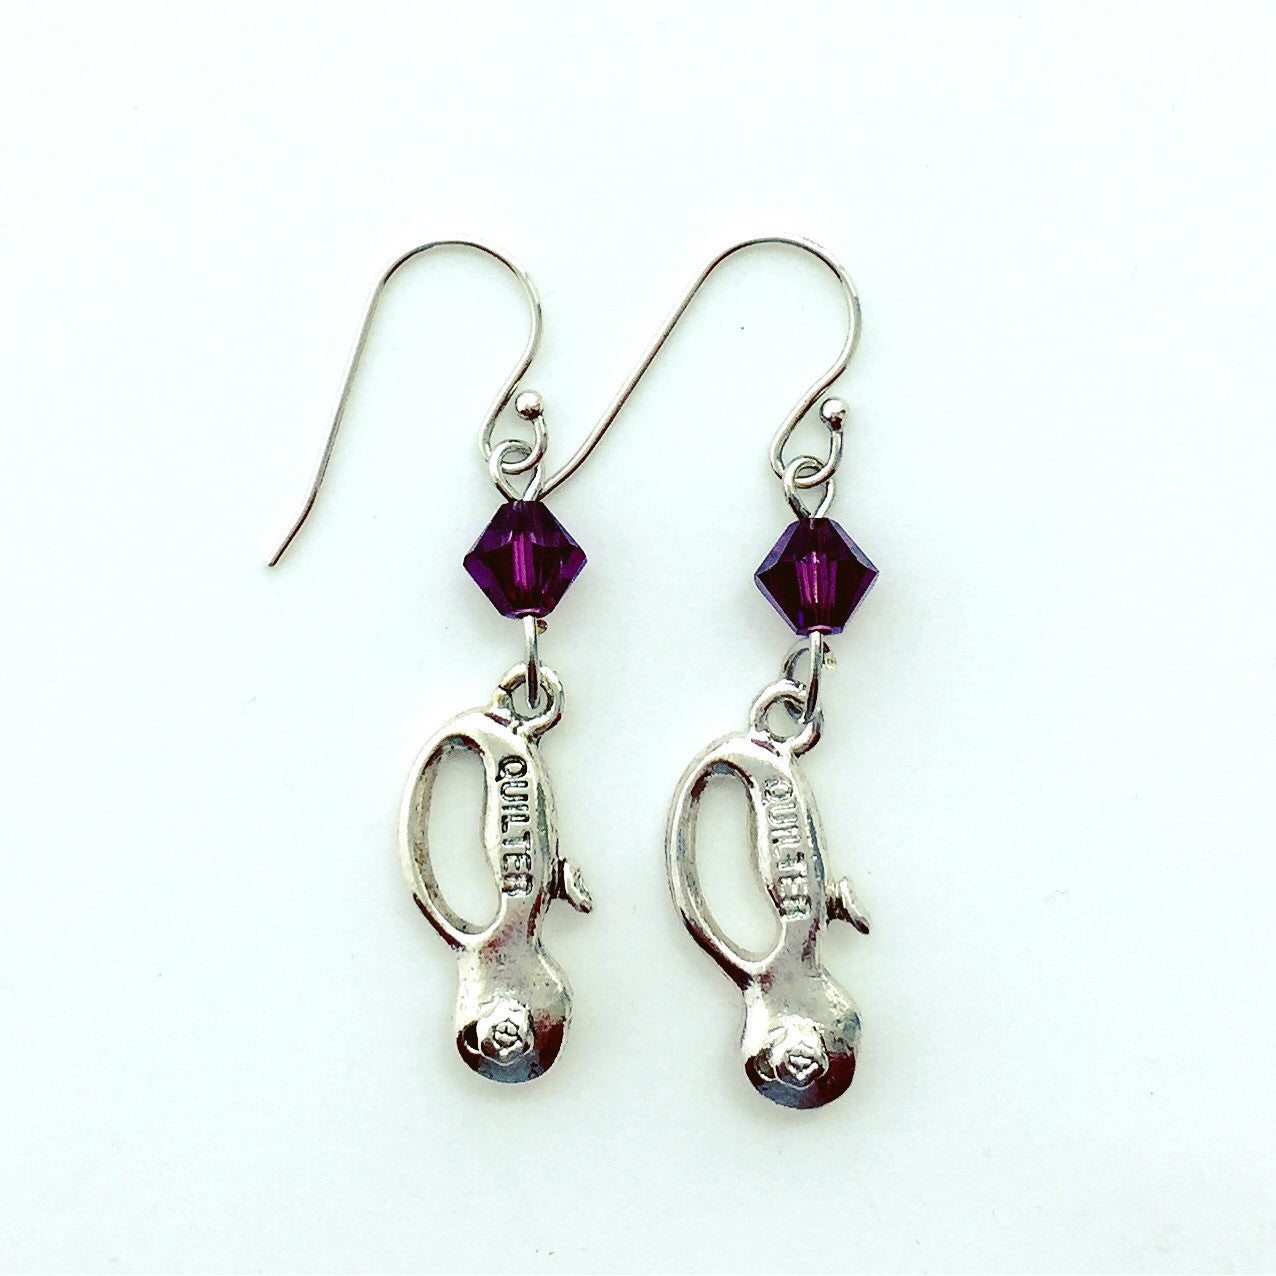 ____ Quilt Cutter Silver Earrings with Purple Swarovski Crystals.